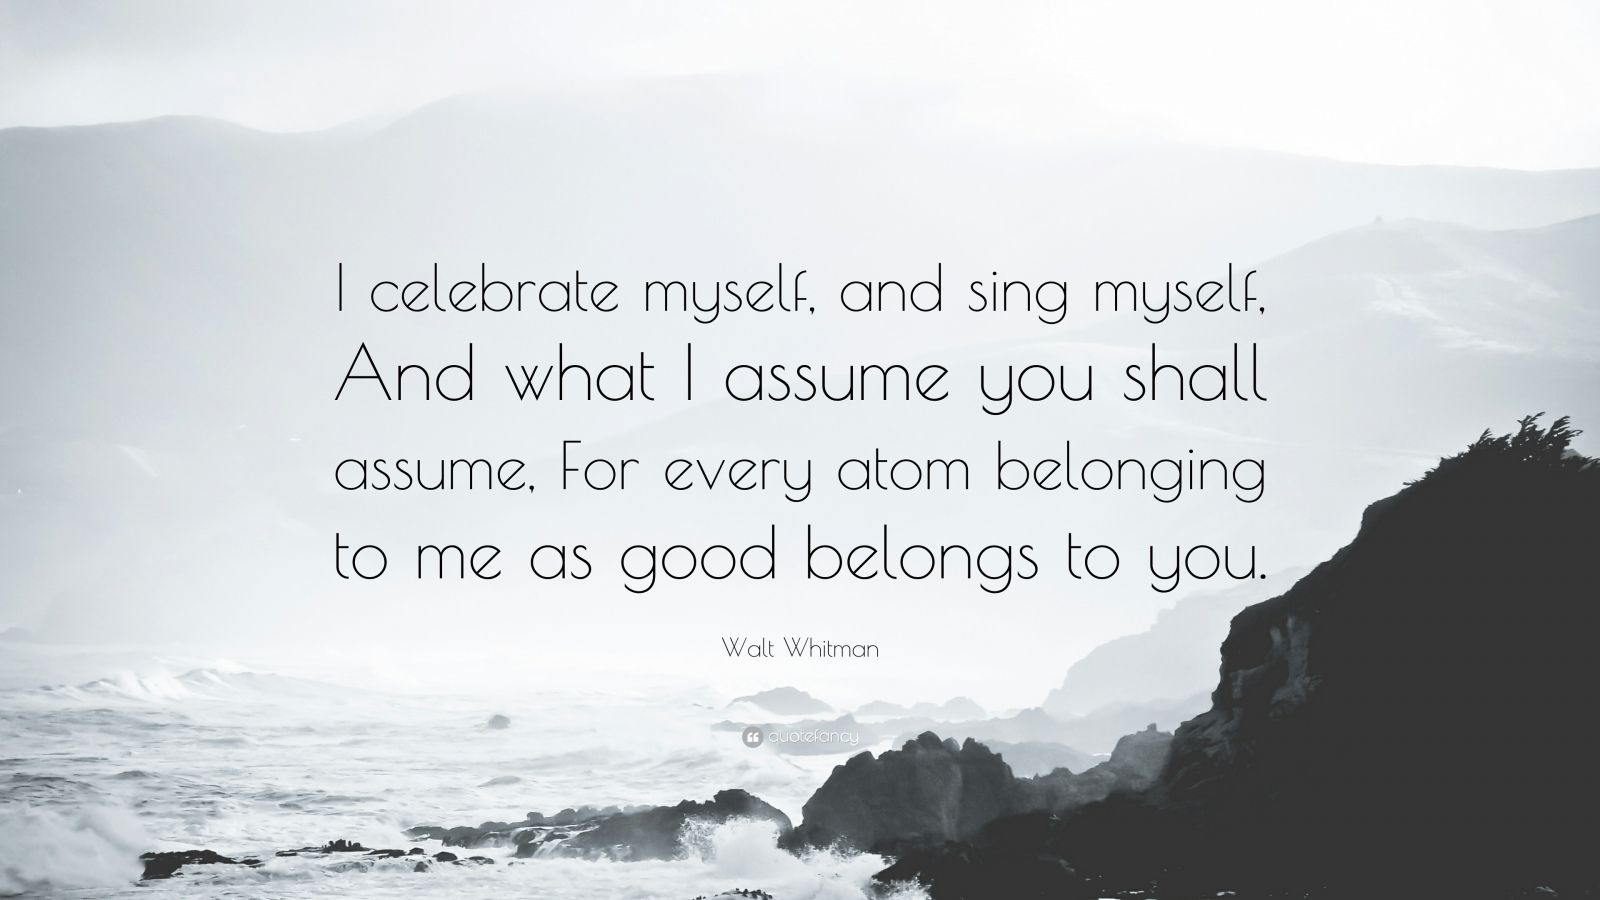 """Walt Whitman Quote: """"I celebrate myself, and sing myself, And what I assume you shall assume, For every atom belonging to me as good belongs to you."""""""